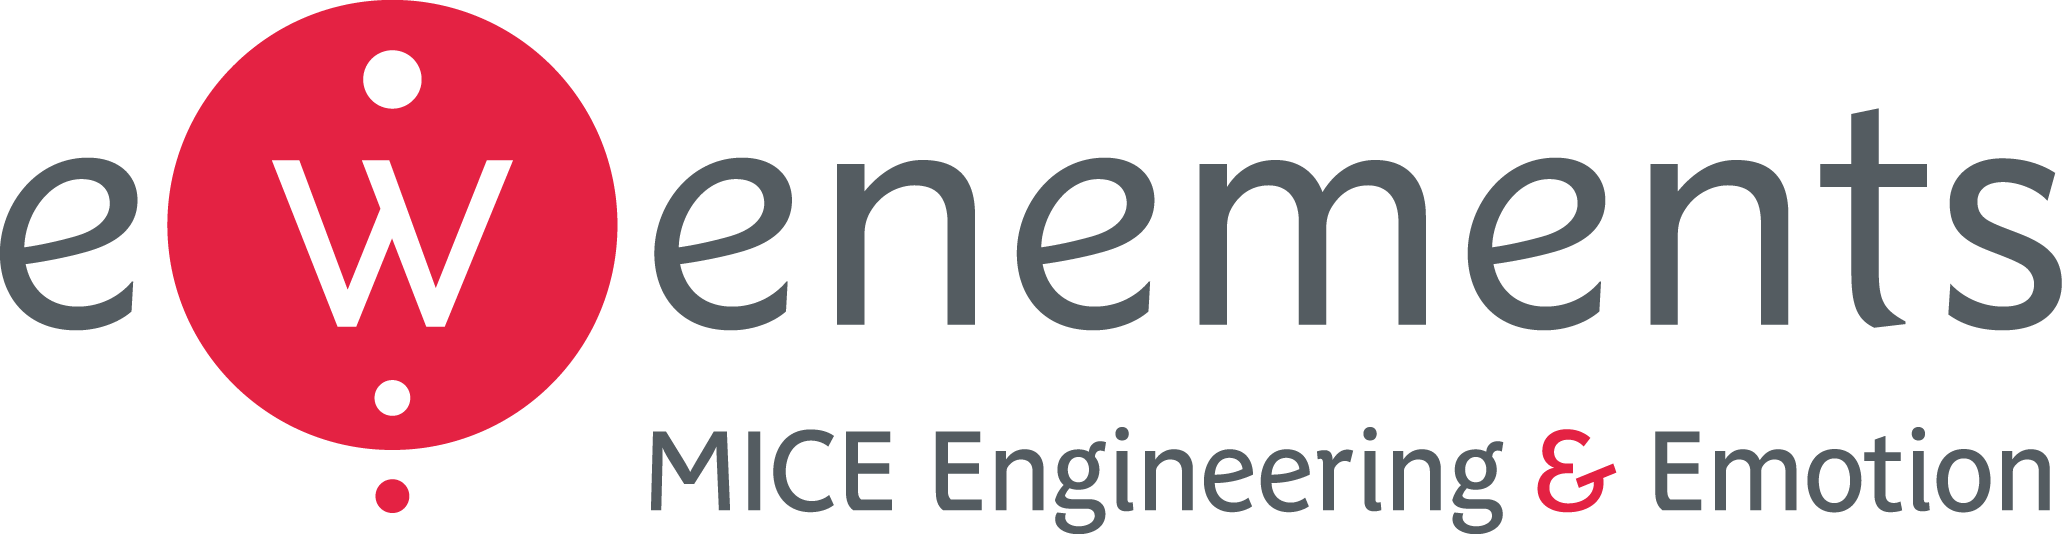 eWenements MICE Engineering and Emotion